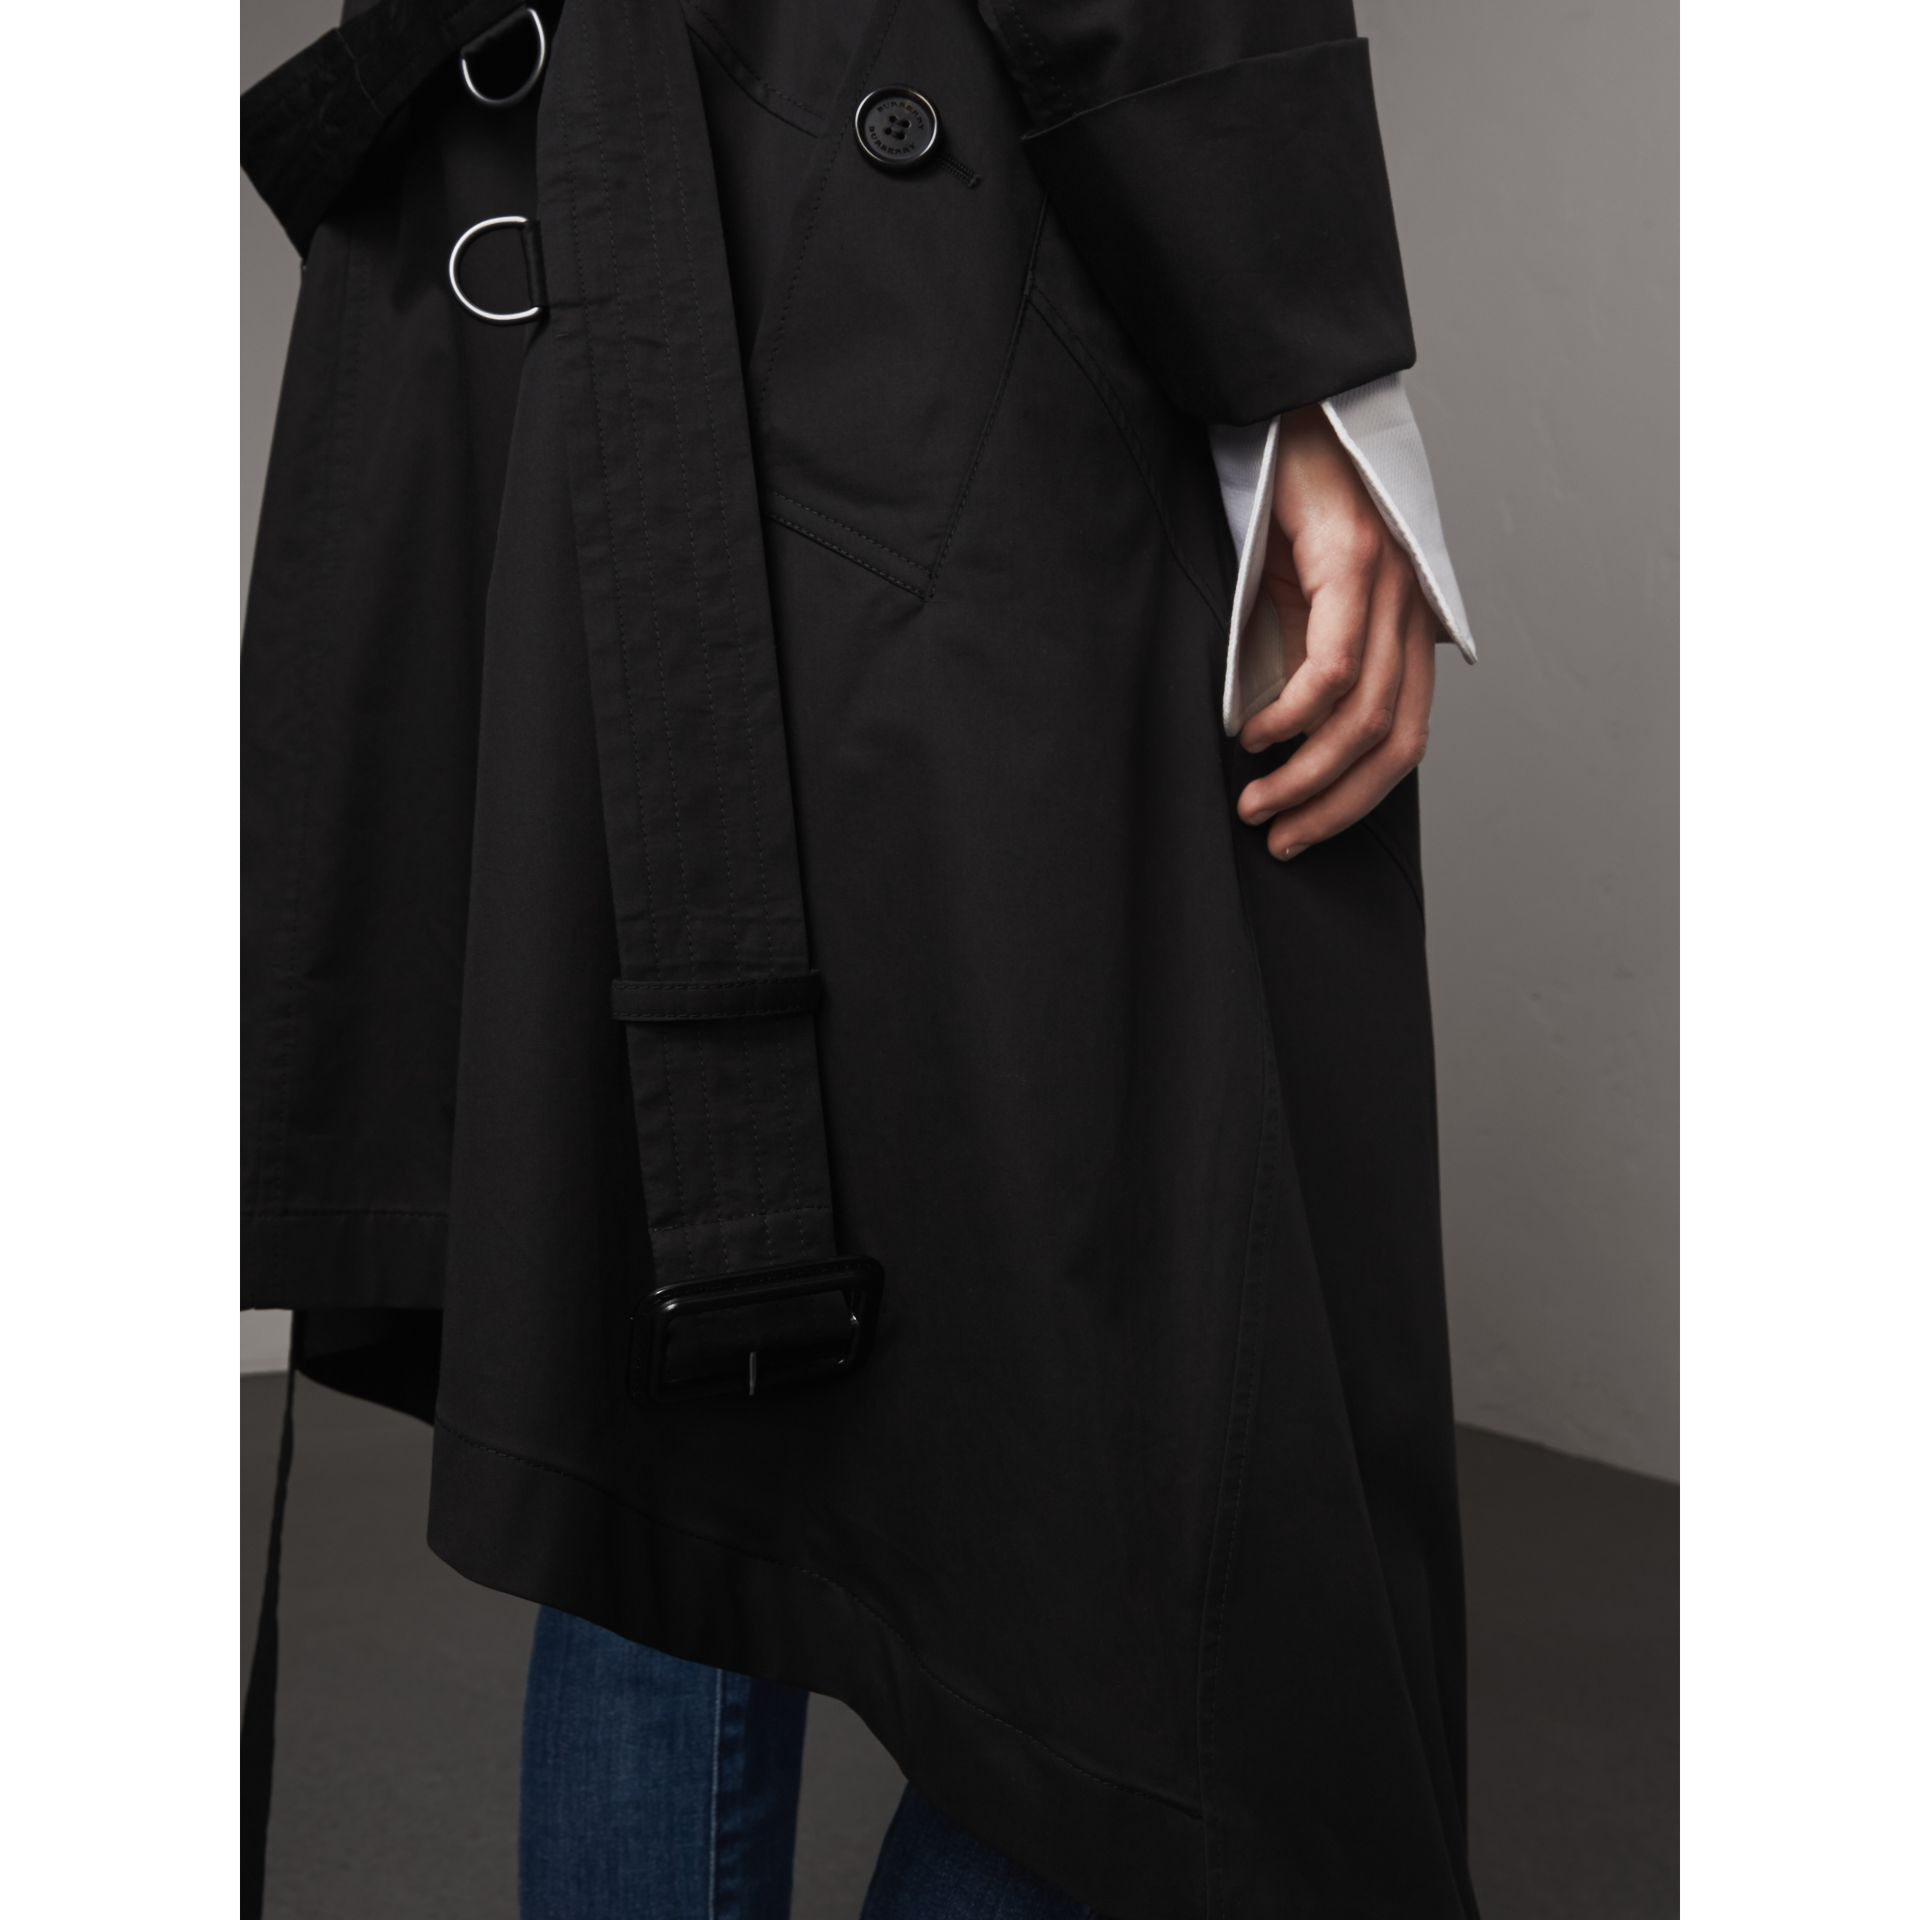 Cotton Asymmetric Trench Coat in Black - Women | Burberry Singapore - gallery image 2